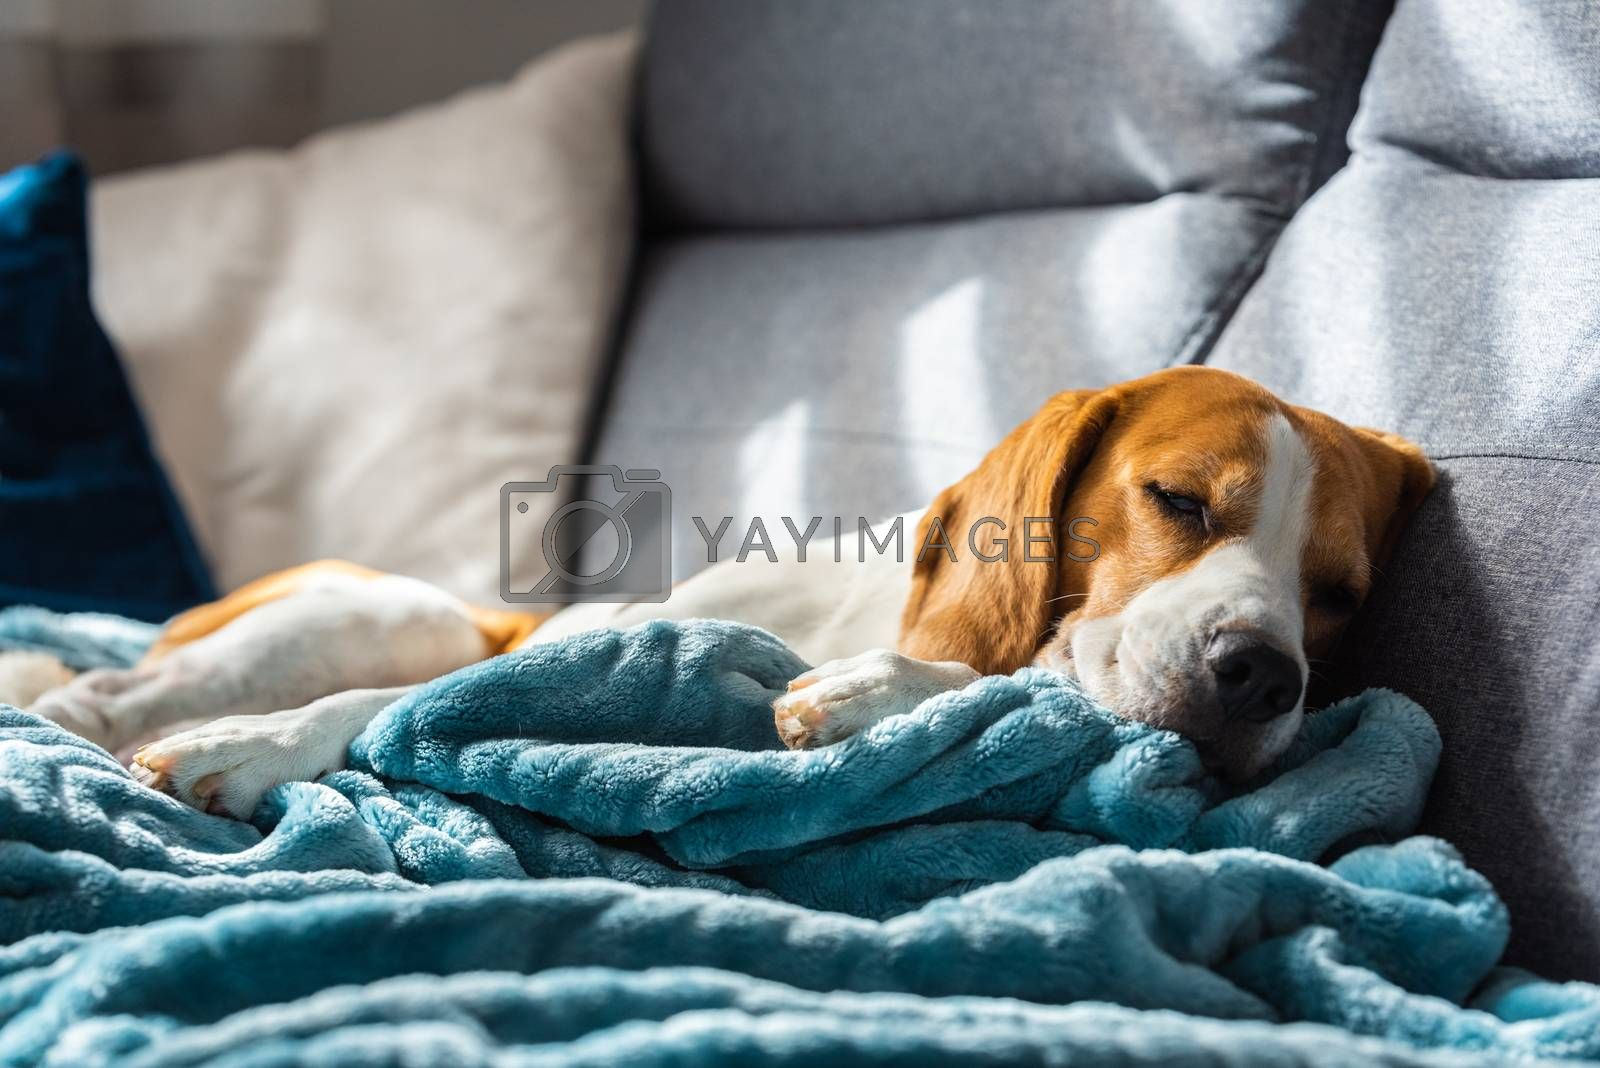 Beagle dog tired sleeps on a cozy sofa in bright room. Canine theme